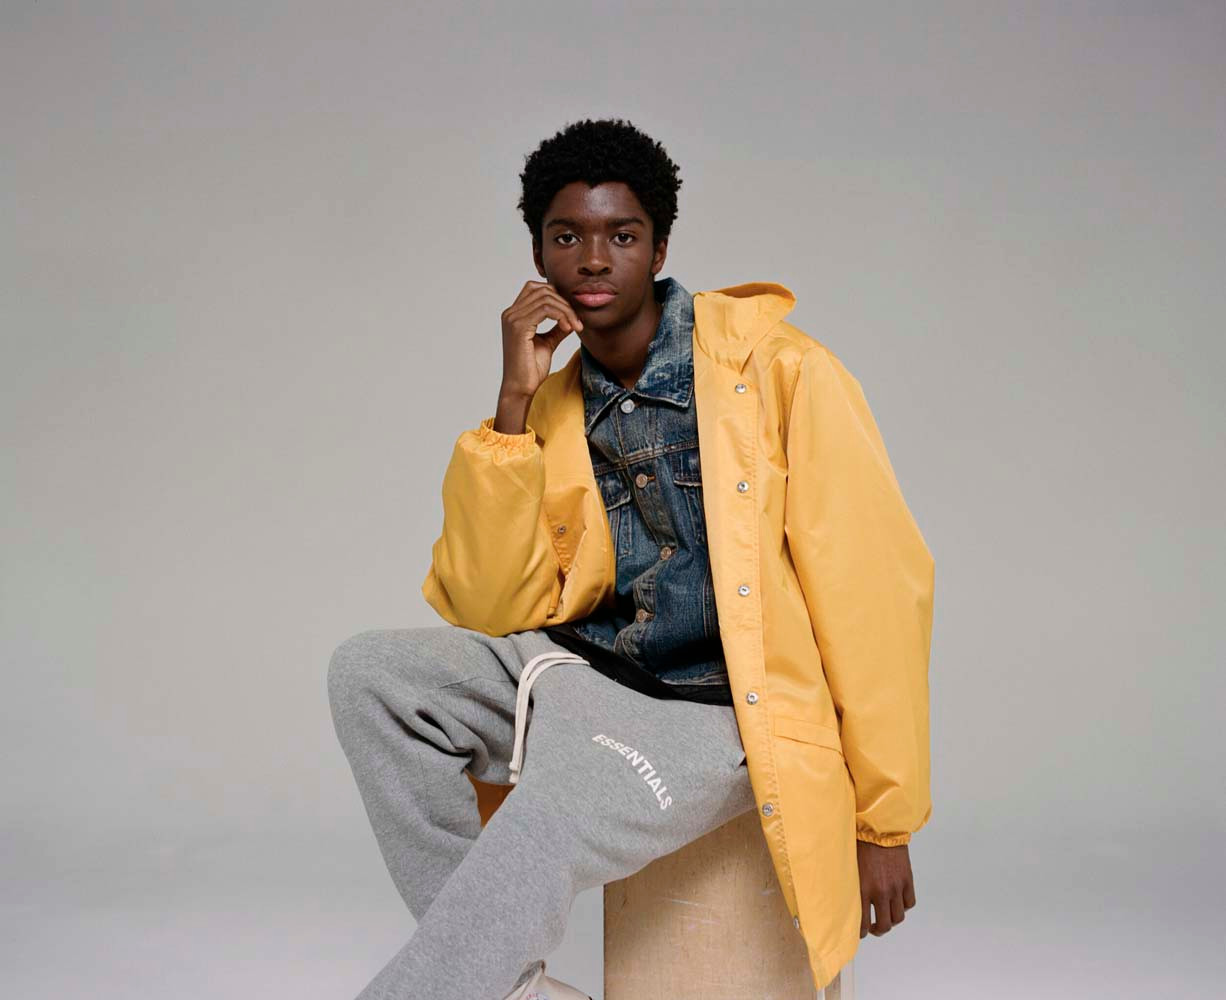 07a2a511 The ESSENTIALS FW18 Collection by Fear Of God, including the Converse  collab, arrives this September at PacSun. Peep the full lookbook below: